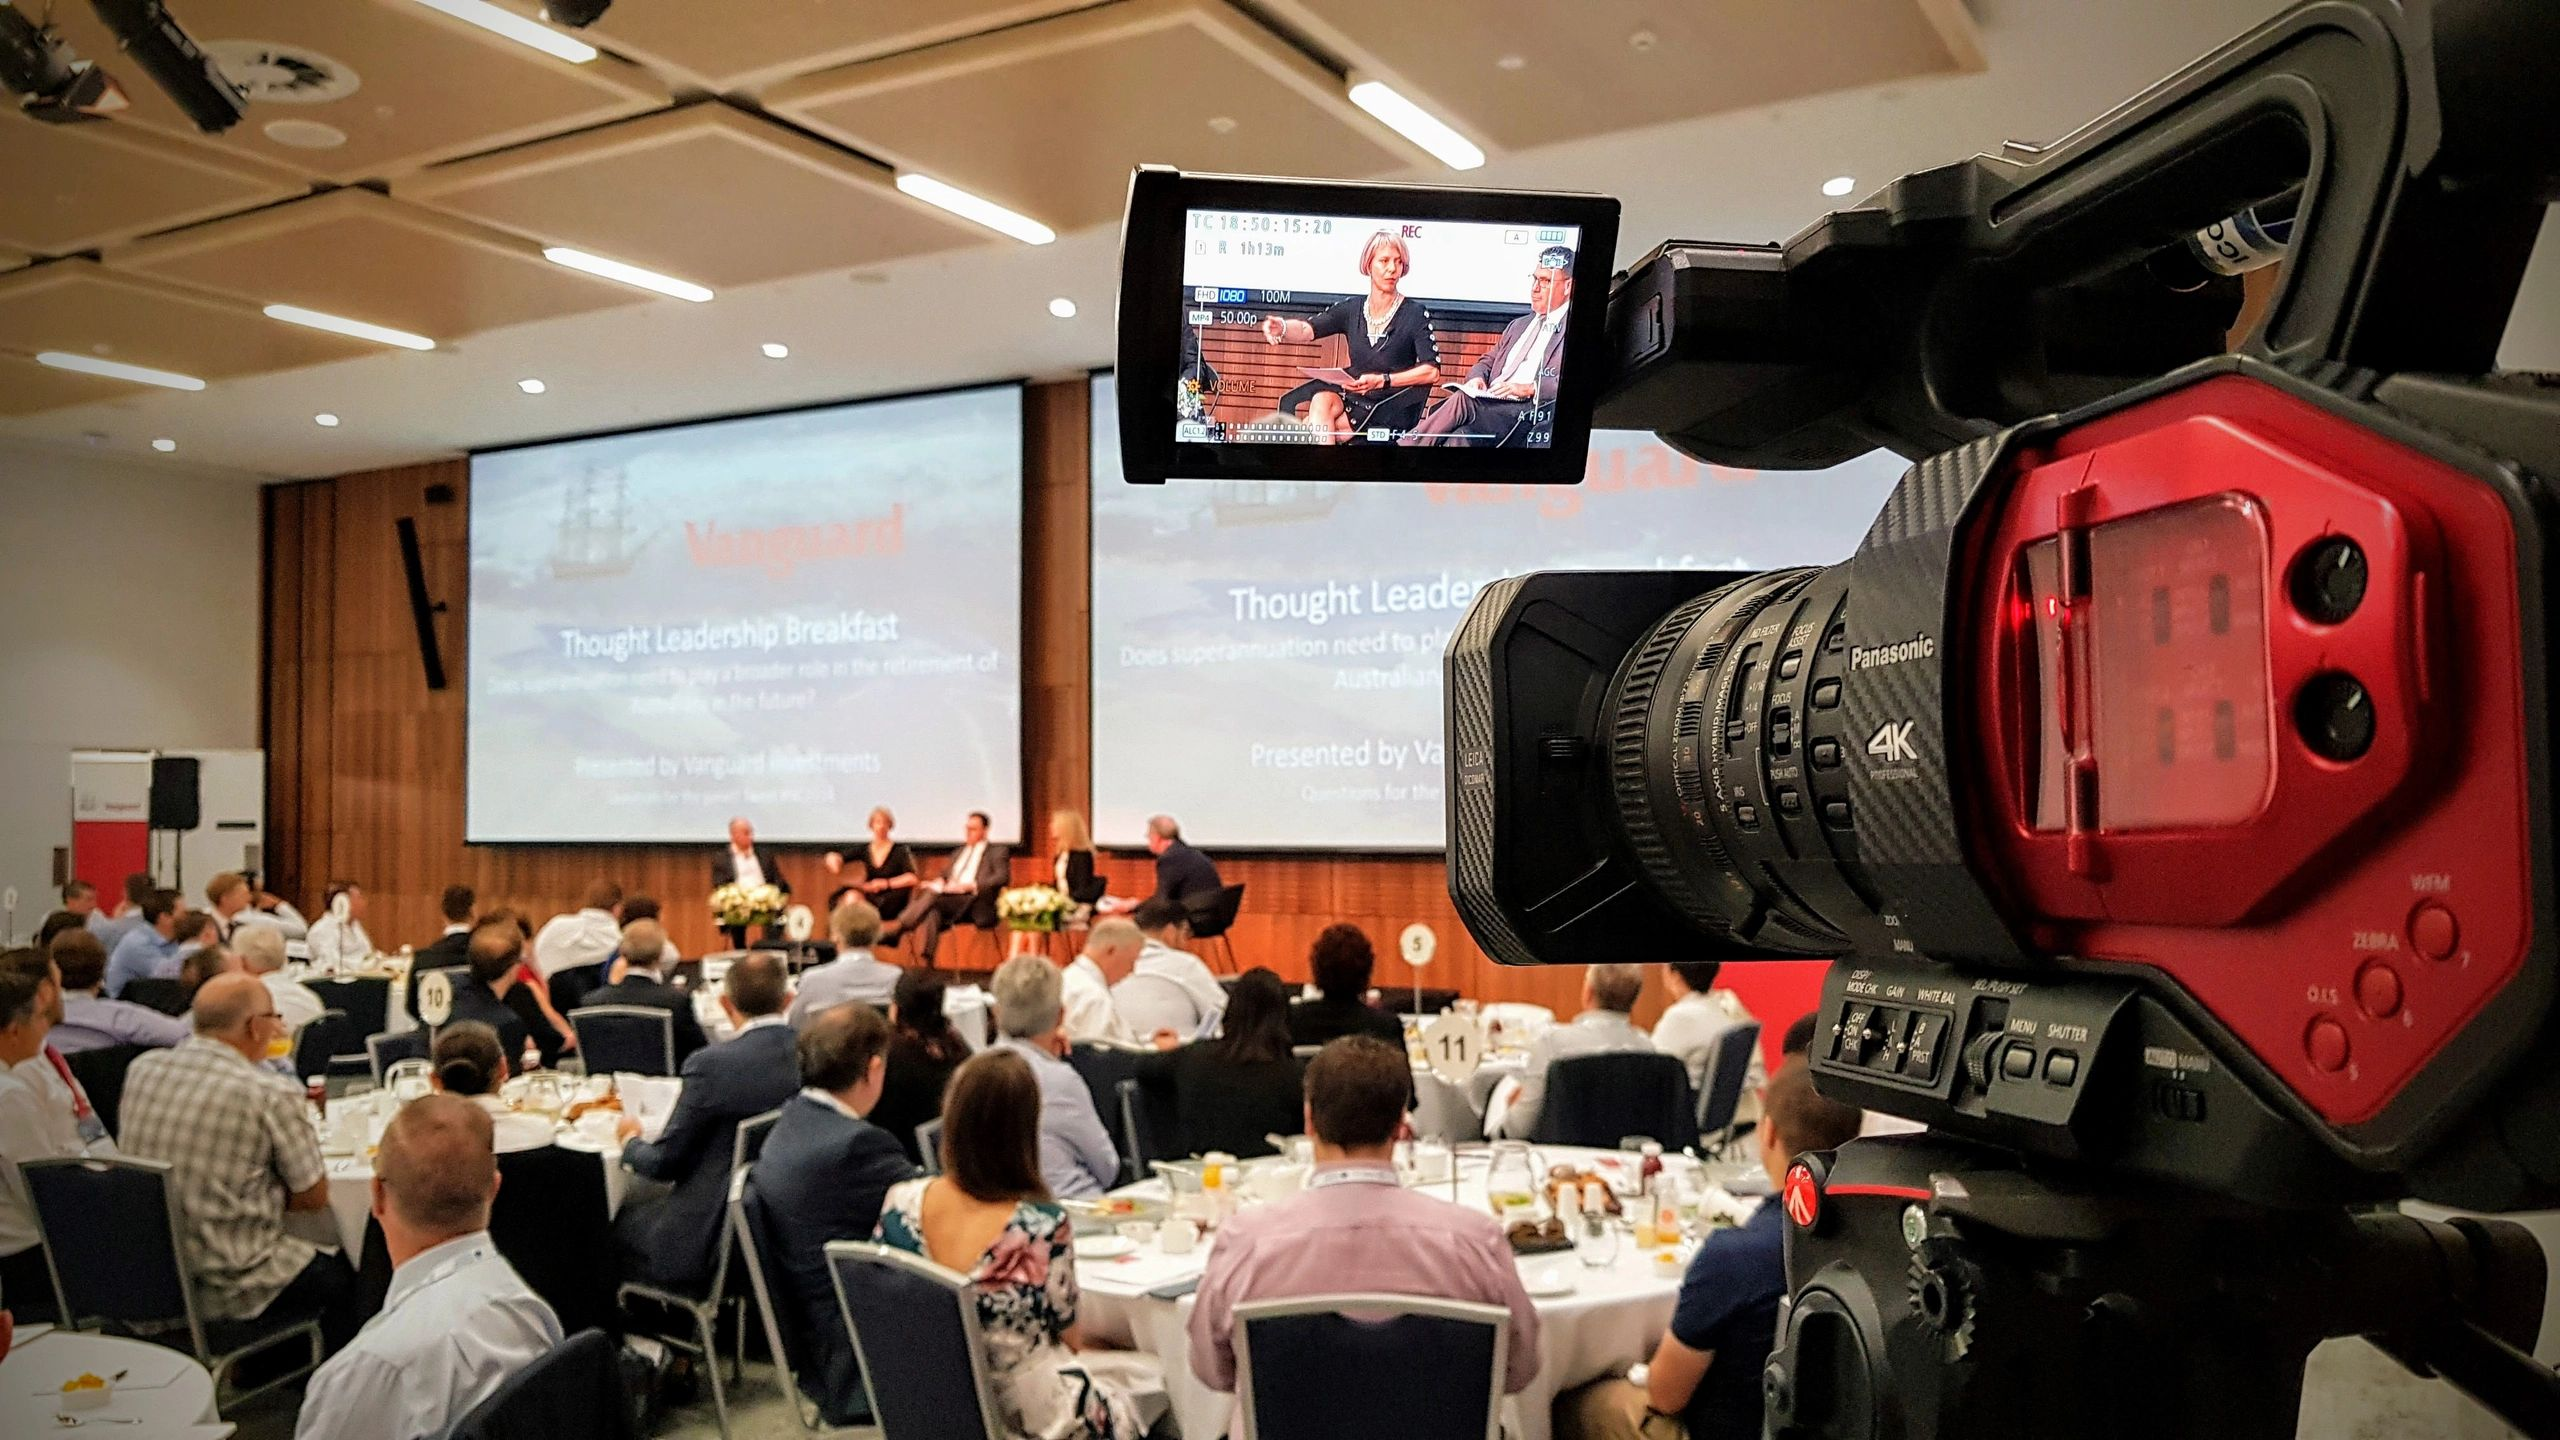 Filming the Vanguard Thought Leadership Breakfast at the SMSF Association Conference in Sydney